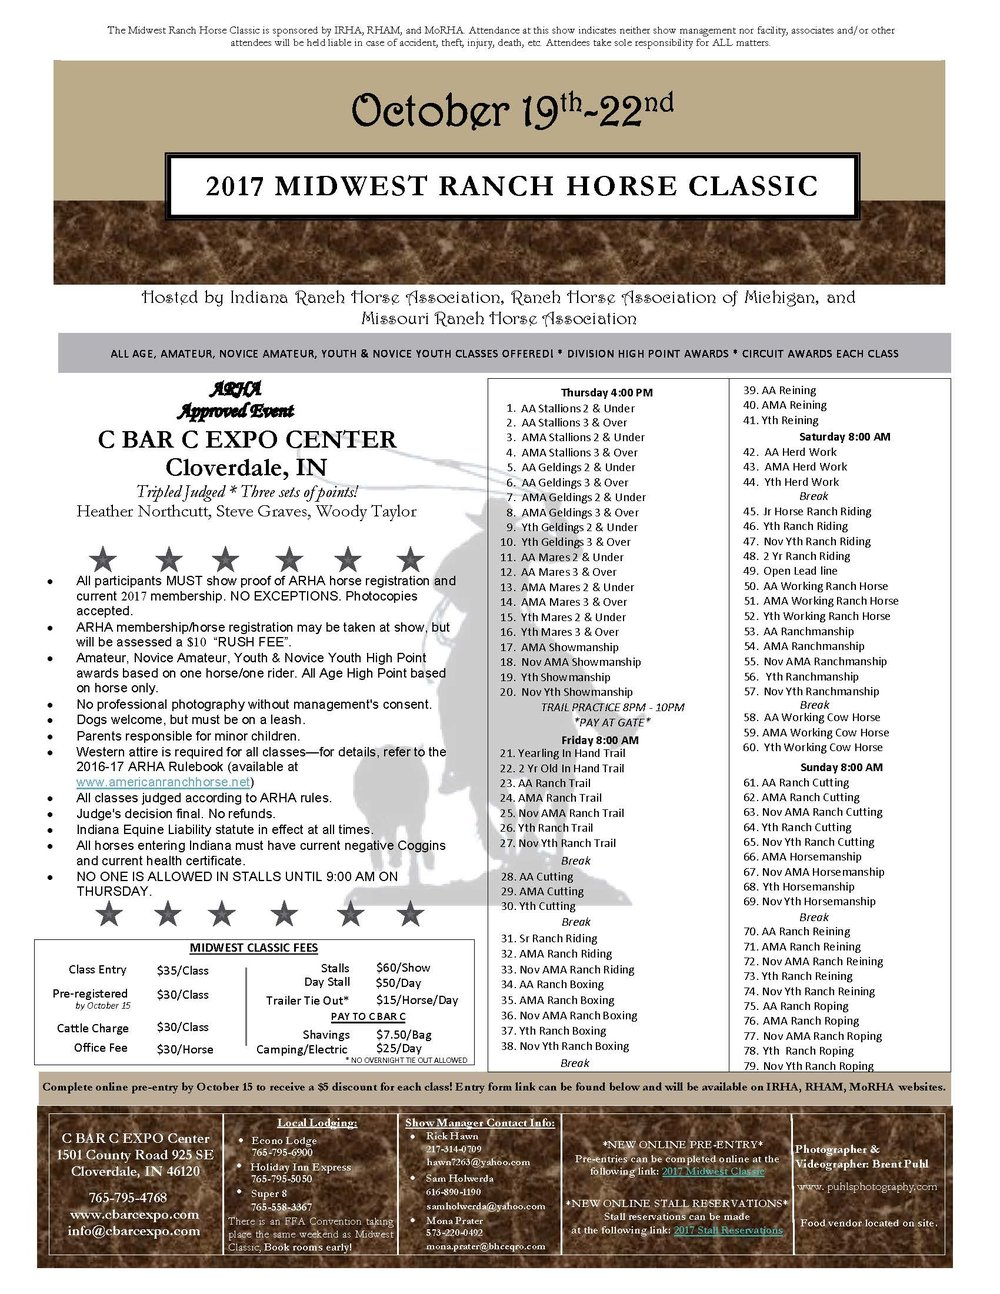 Midwest Ranch Horse Classic Showbill